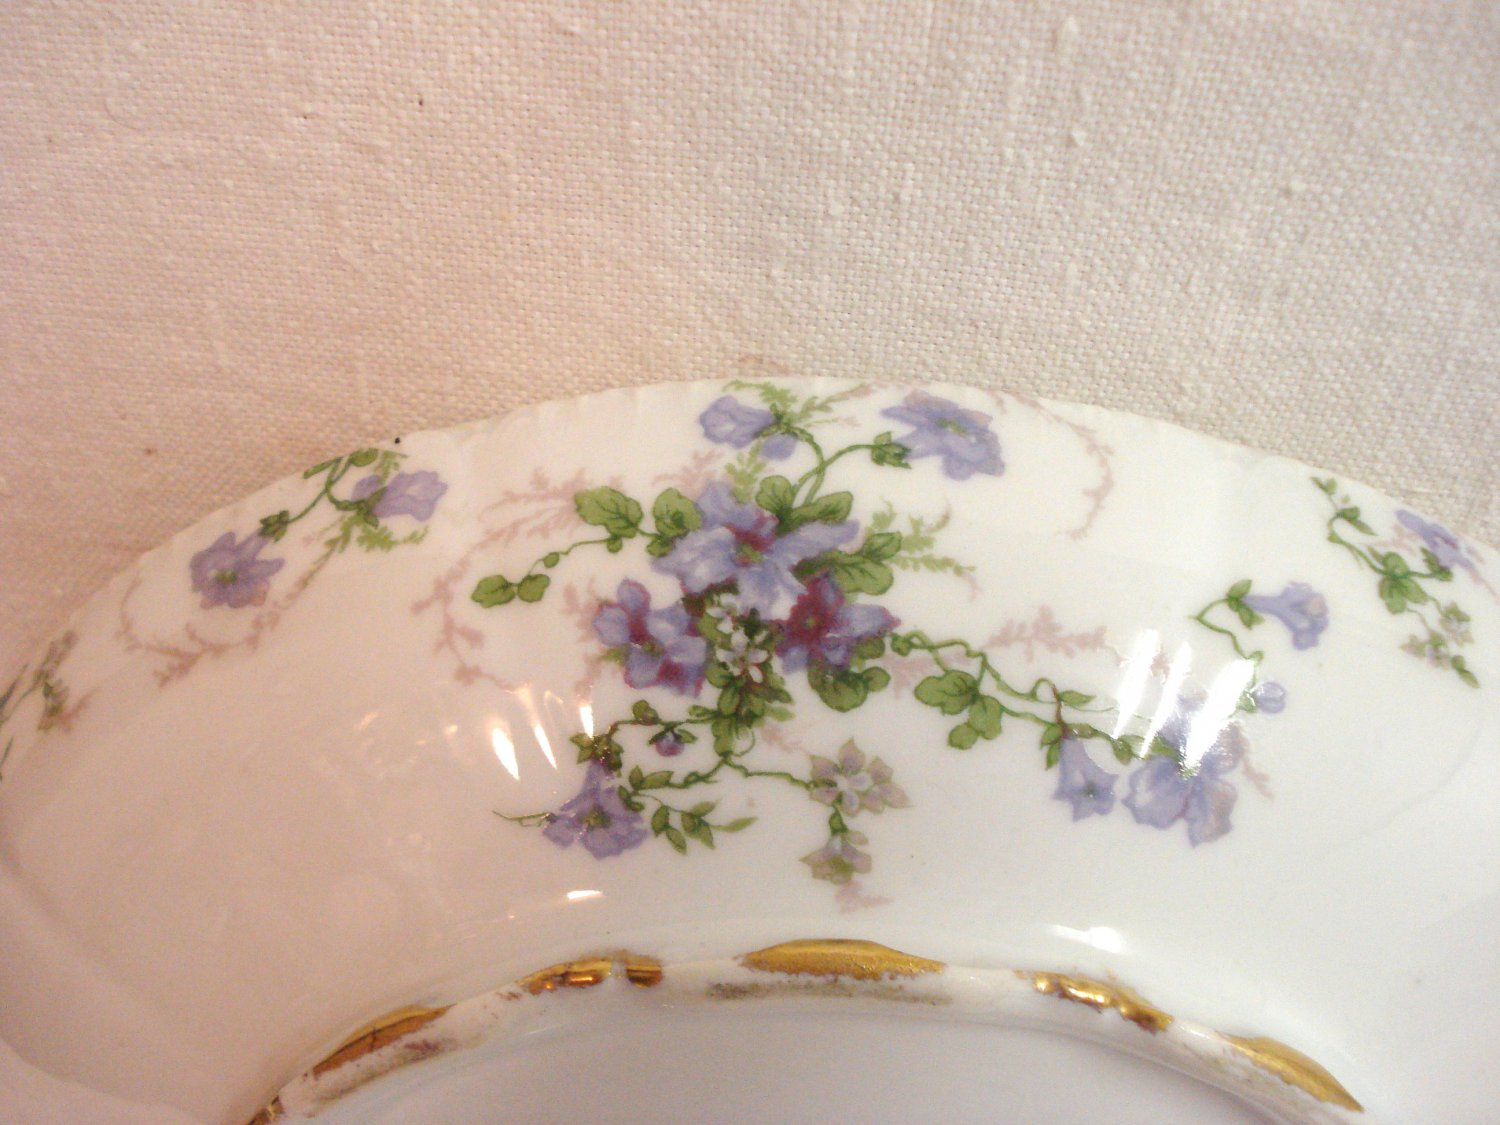 Limoges Havilland porcelain serving dish Ch. Field purple flowers gold excellent France hc3257